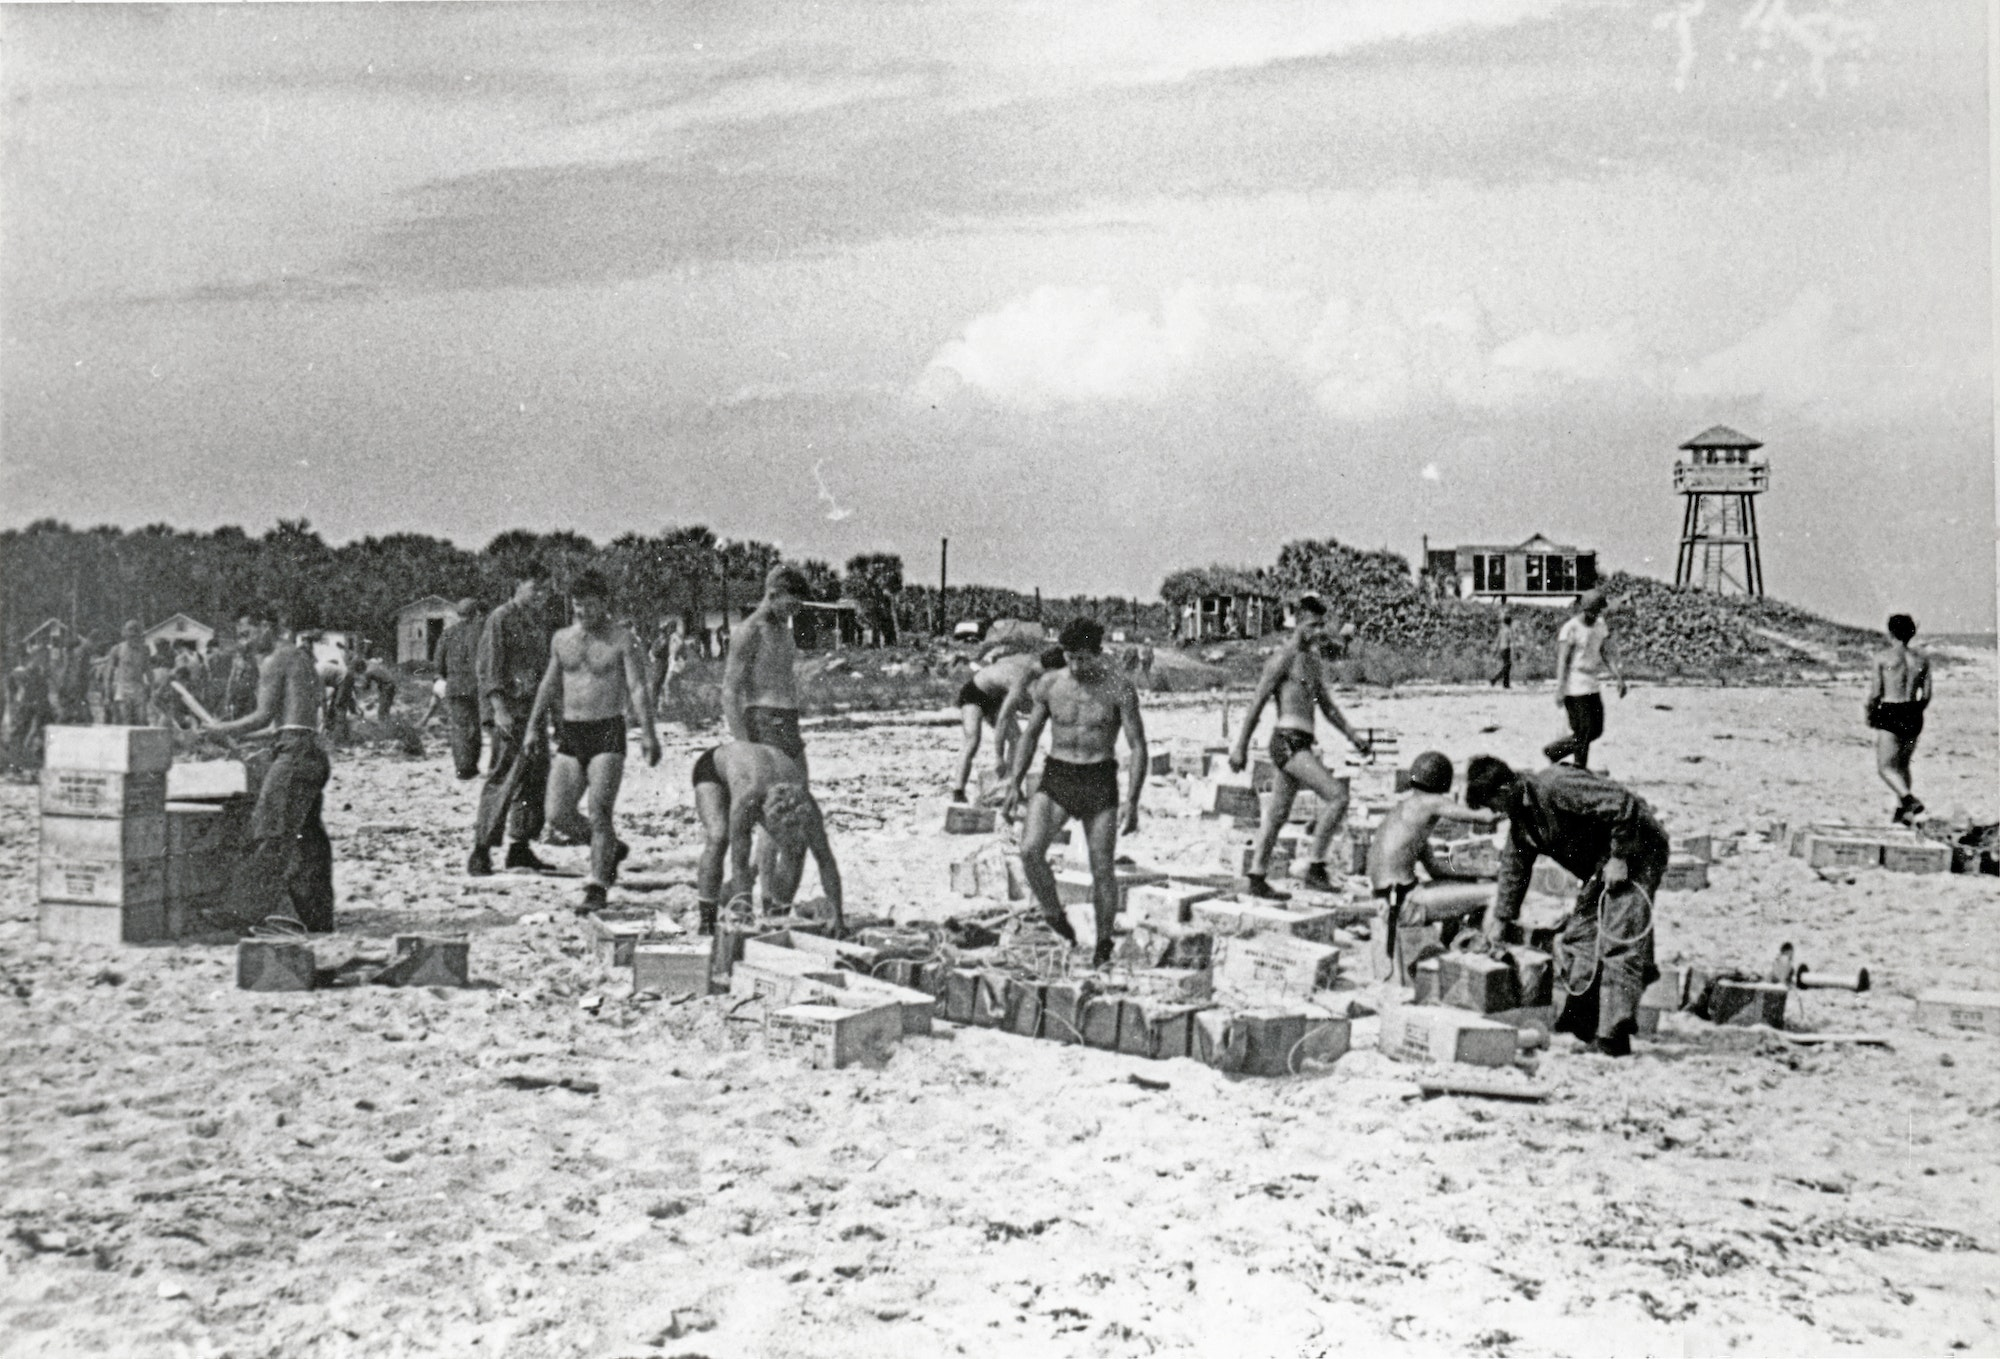 military service men working to move supplies on the beach with the tower in the background